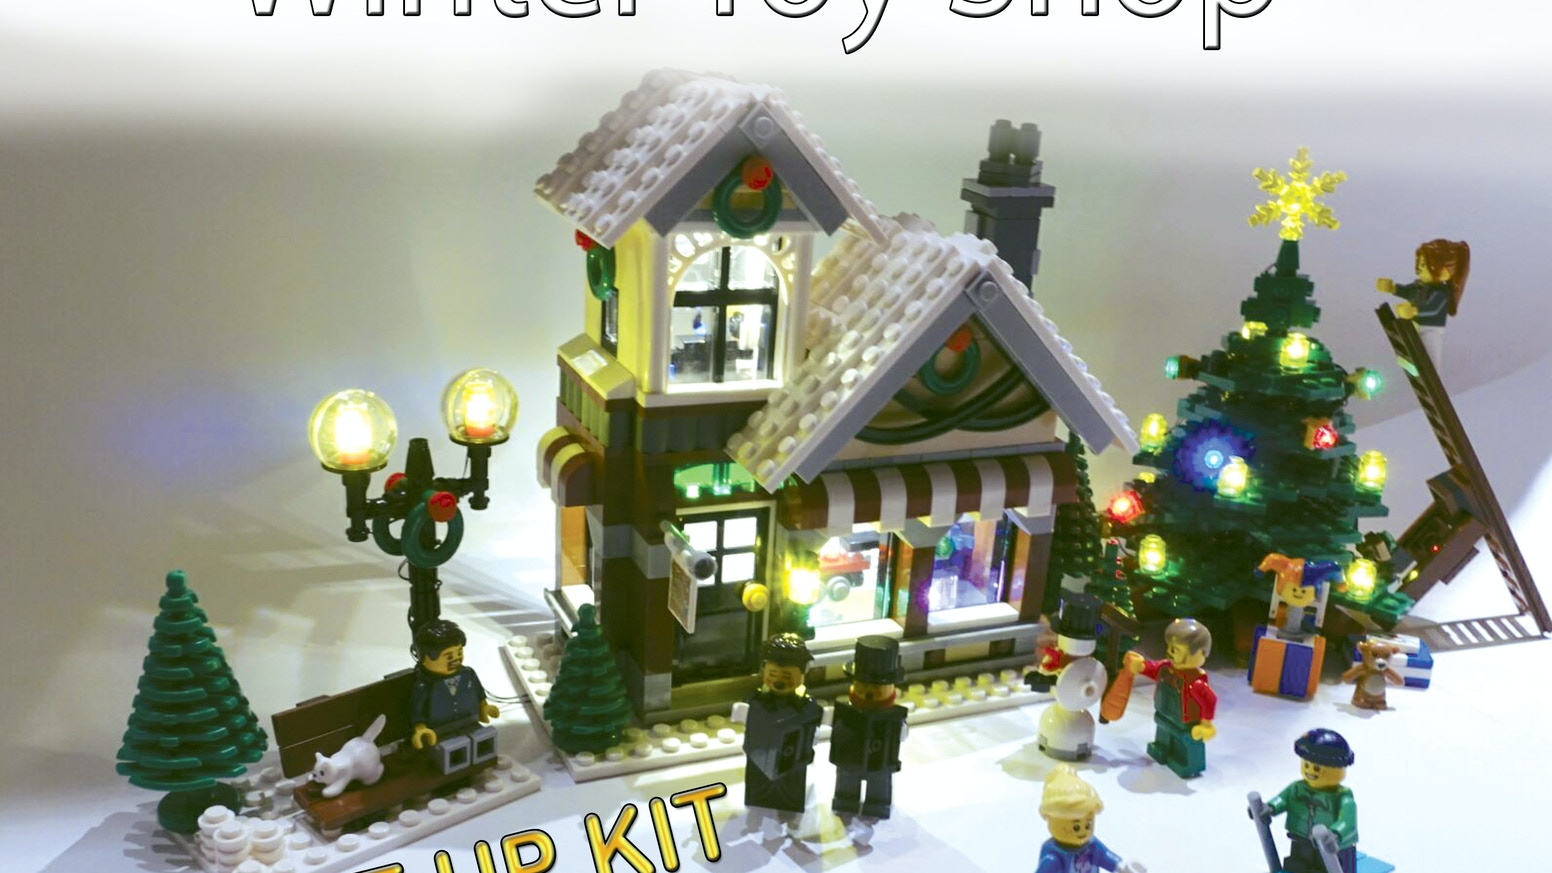 Light up kits for LEGO 10249 - Winter Toy Shop - USB